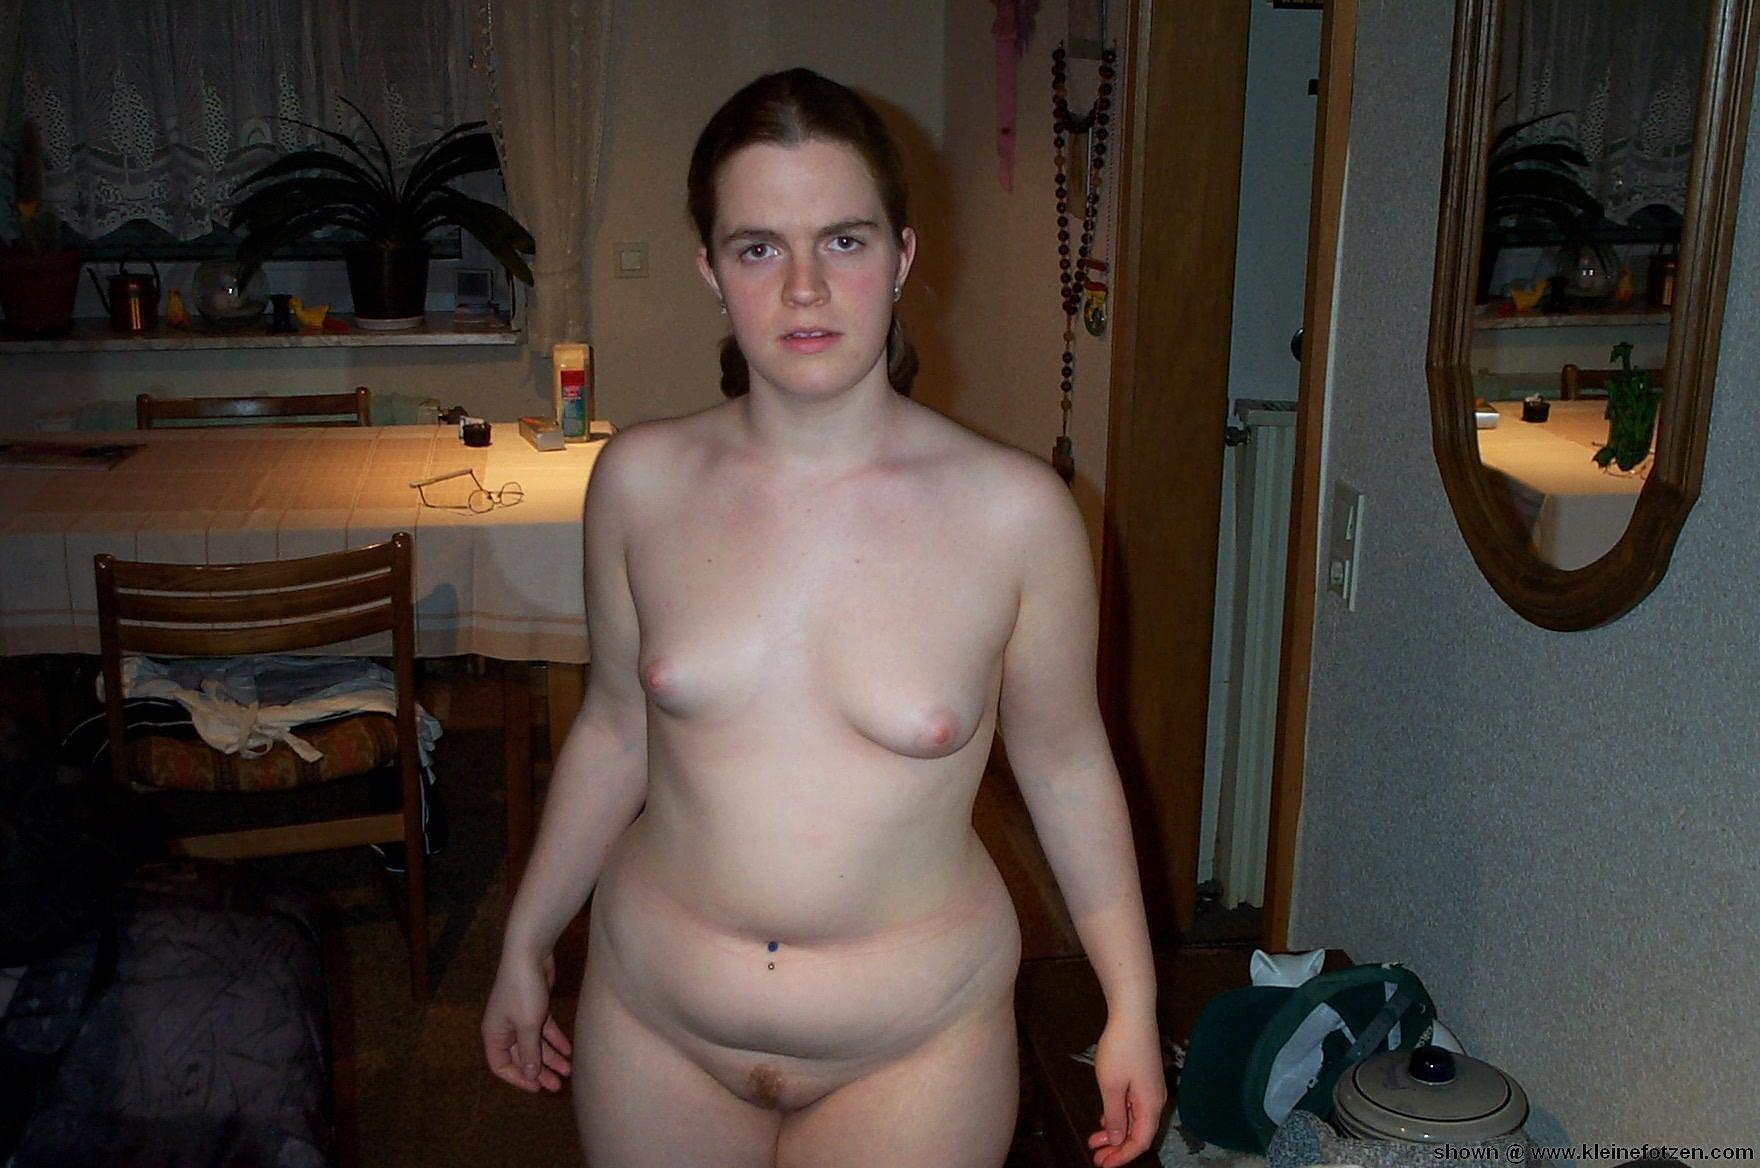 Naked selfies of chubby females